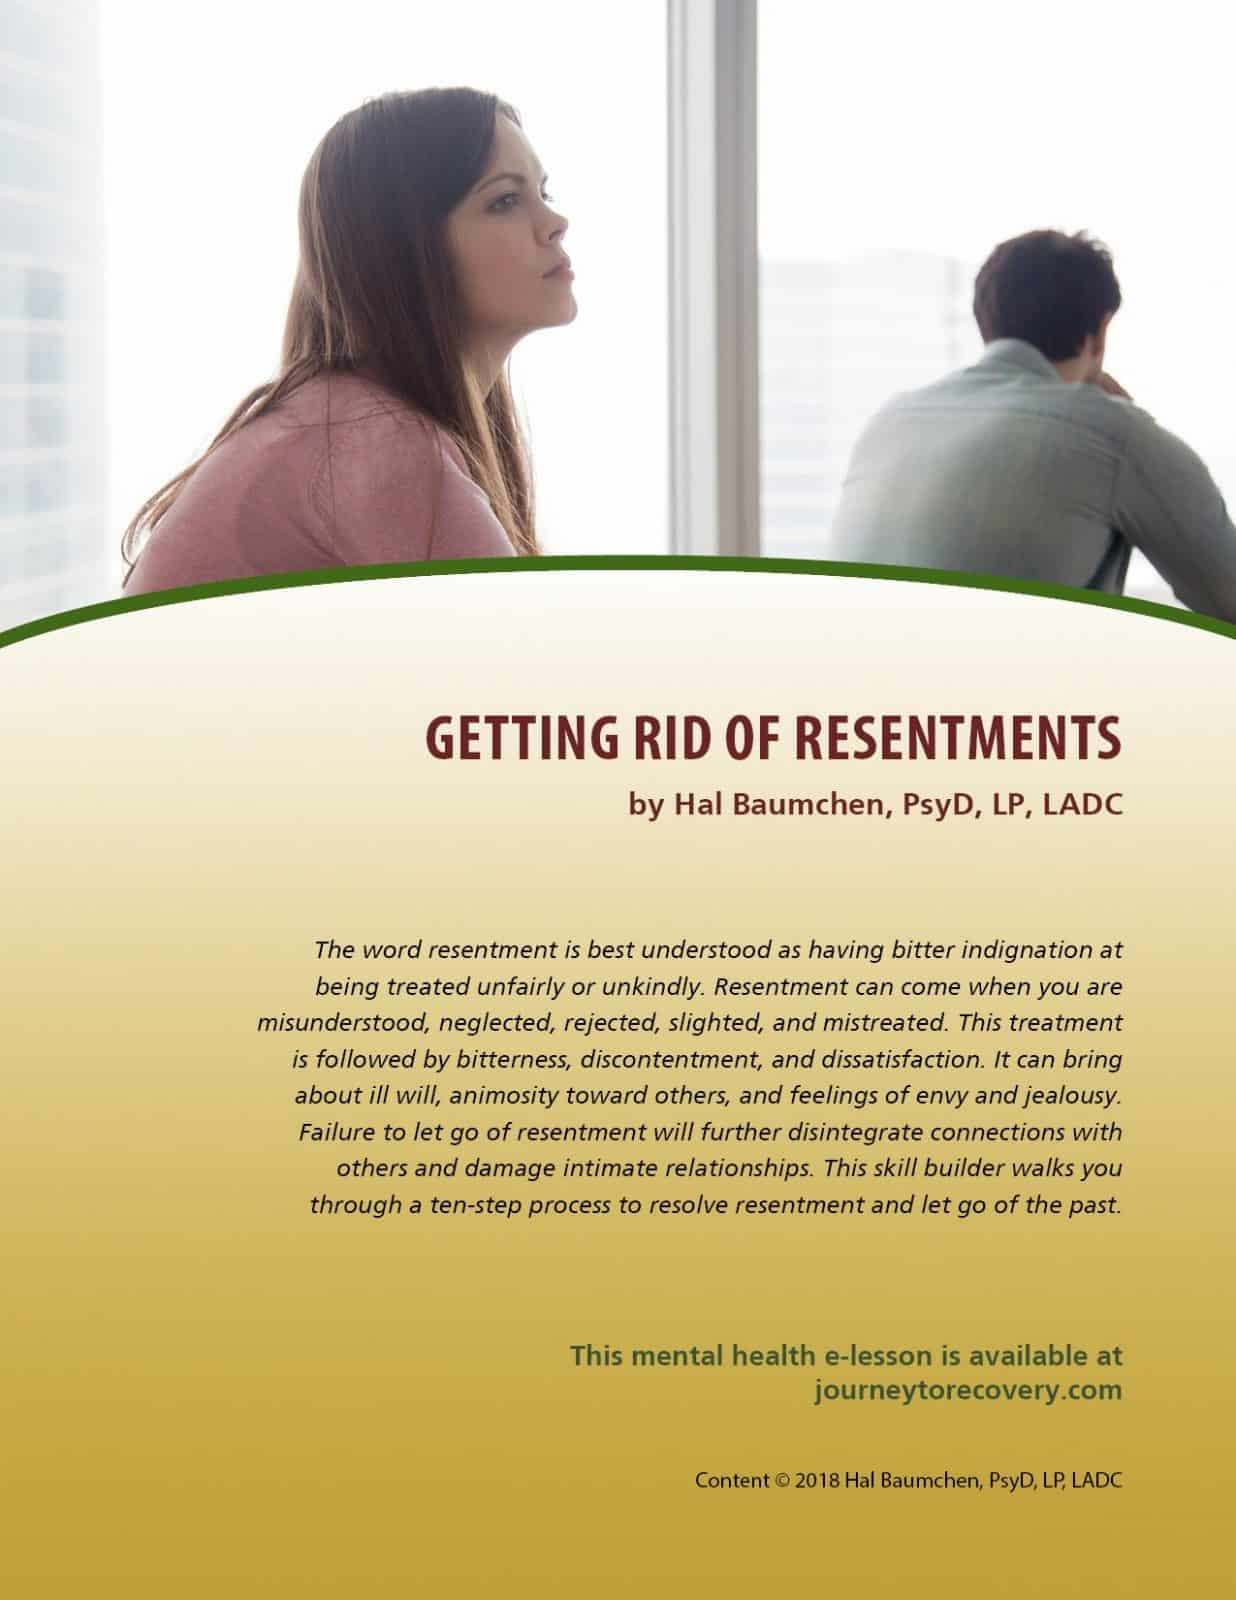 Getting Rid Of Resentments Mh Lesson